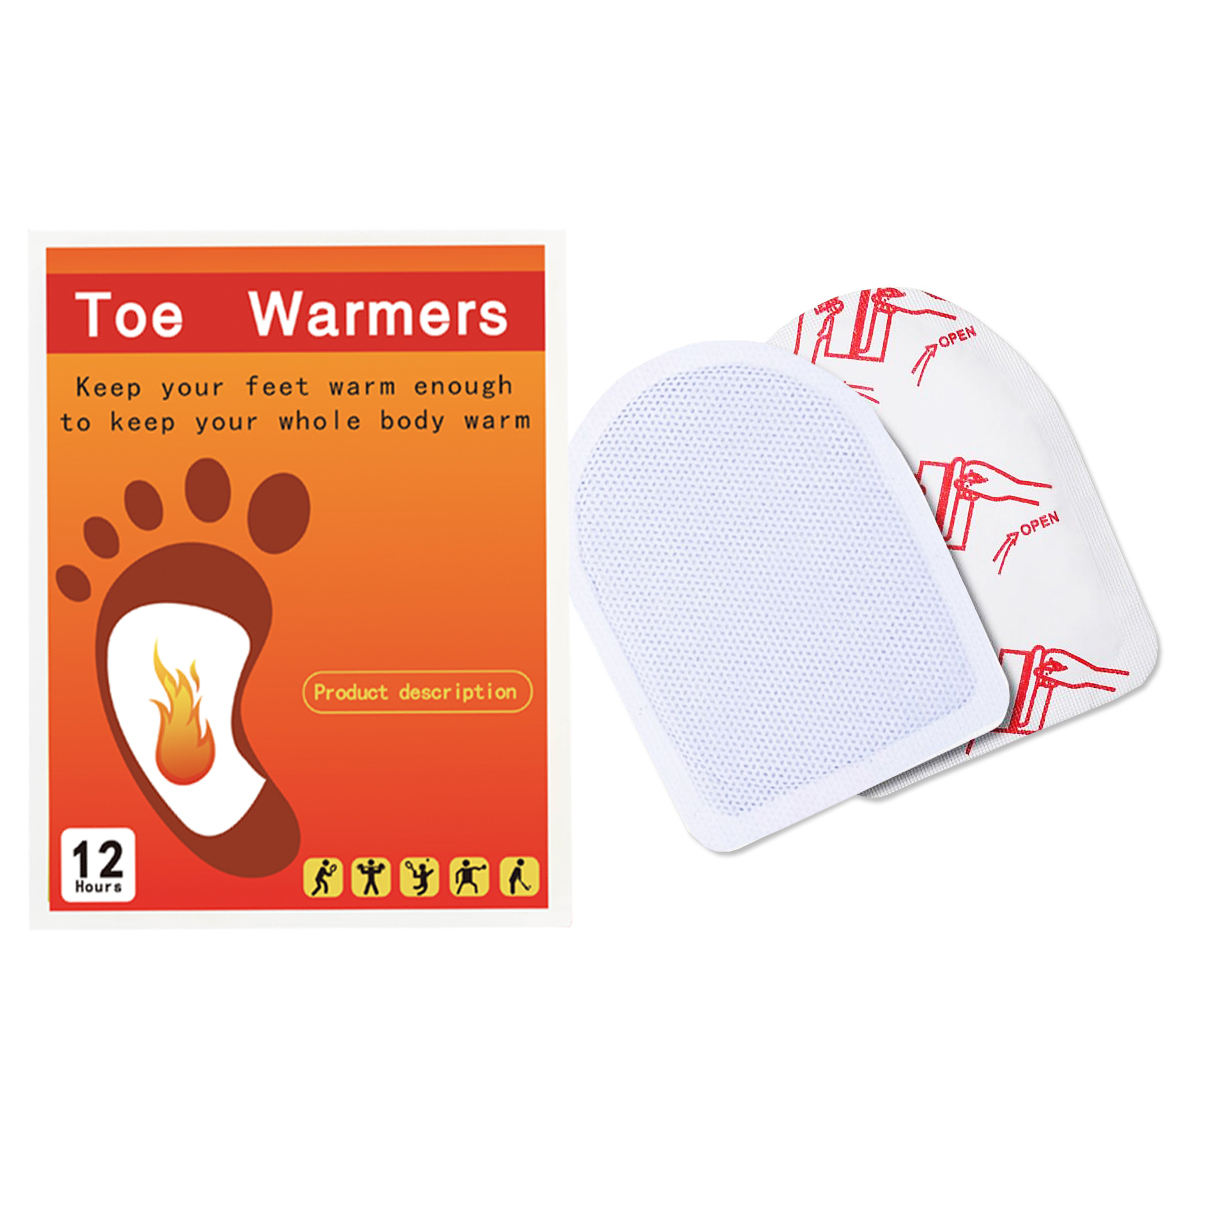 Toe warmer heating insole heat patch high quality foot warm pad adhesive heat pad for foot